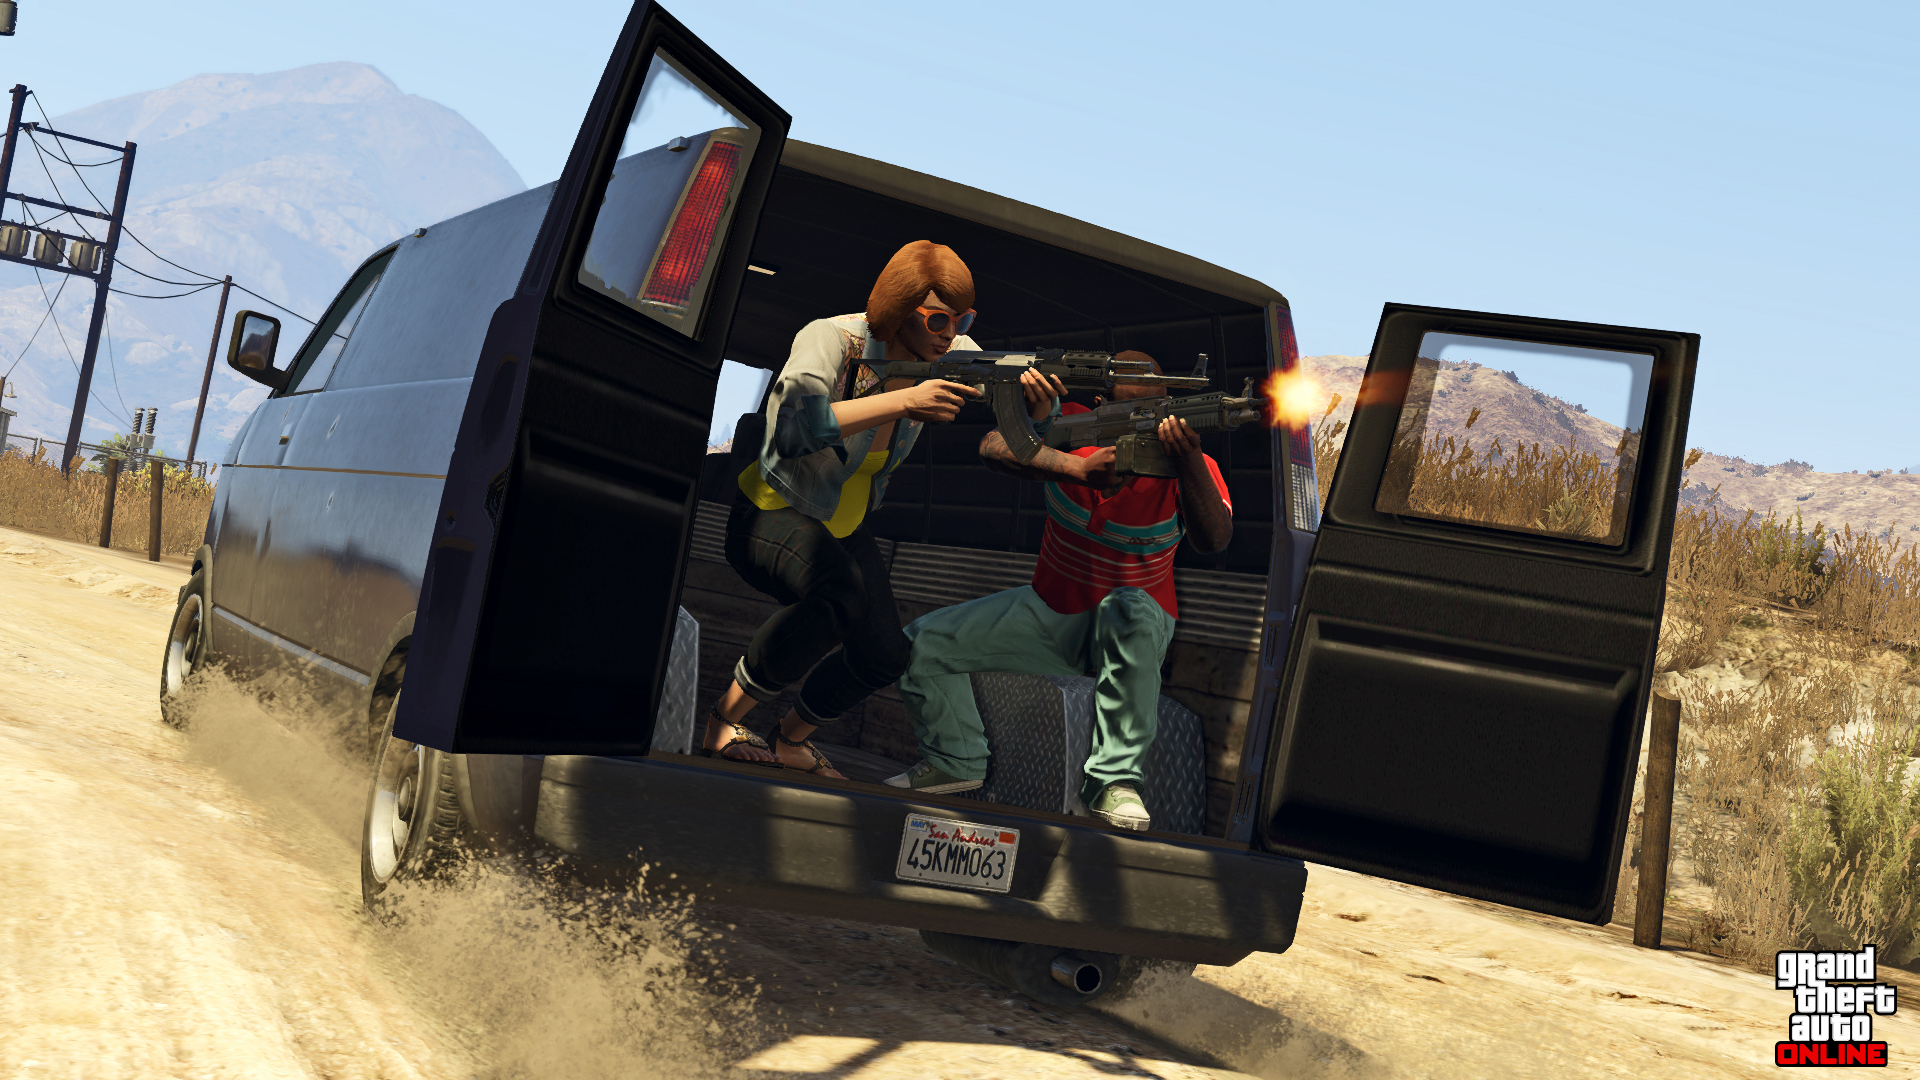 Last gen GTA V will have extra online heist suggest leaks